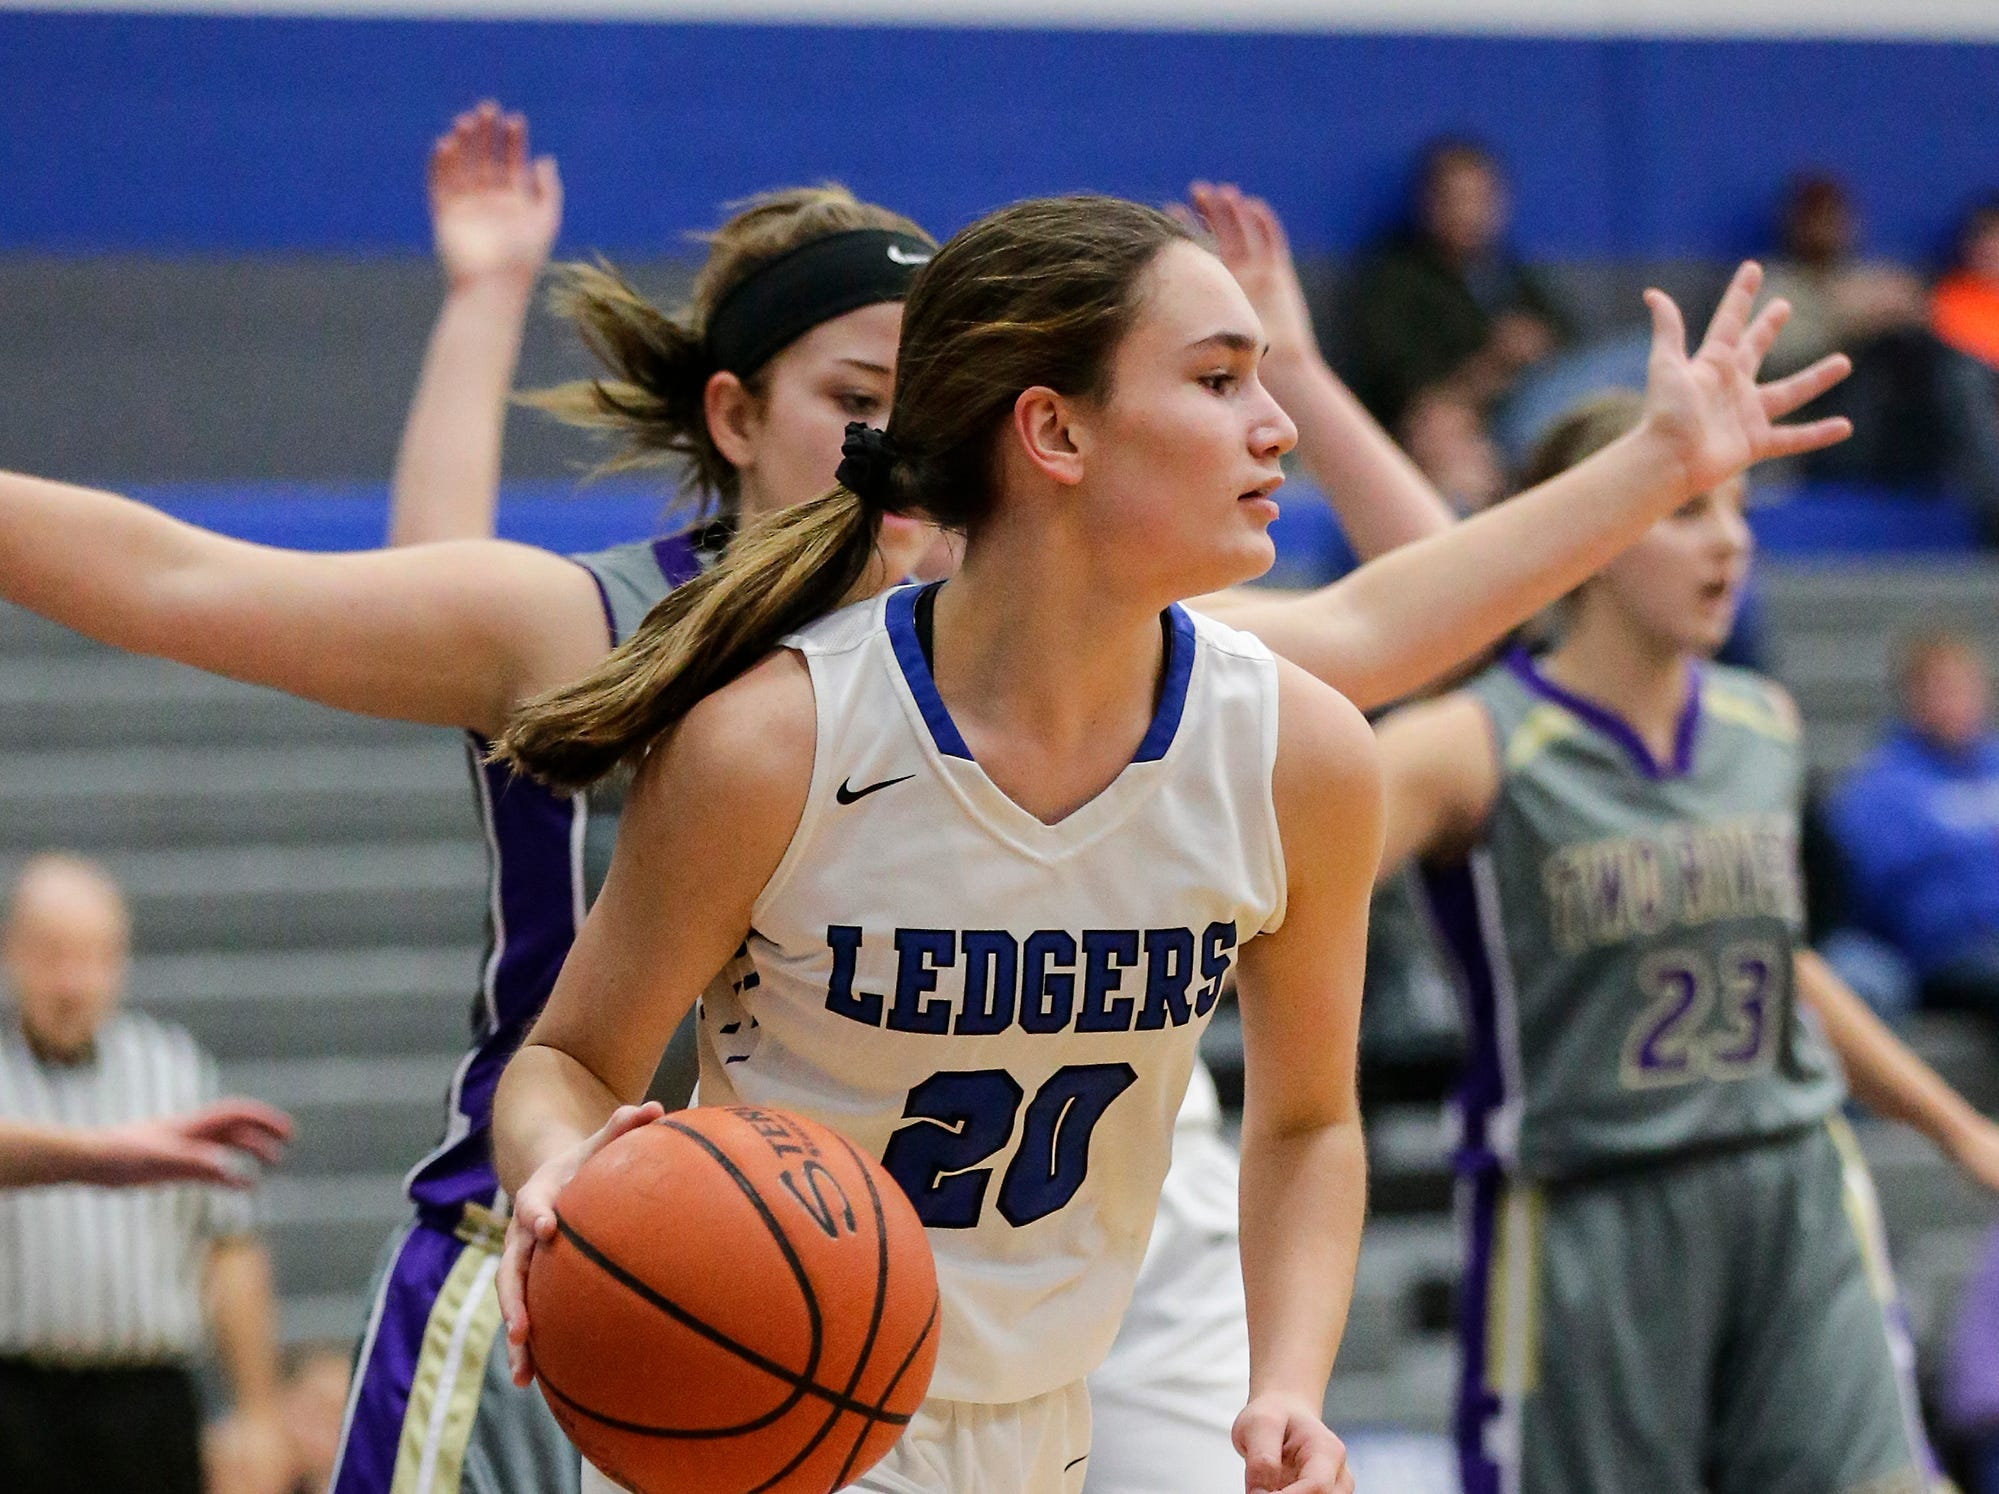 St. Mary's Springs girls basketball's Jenna Gilgenbach dribbles under the net against Two Rivers High School during their game Friday, November 16, 2018 in Fond du Lac. Doug Raflik/USA TODAY NETWORK-Wisconsin